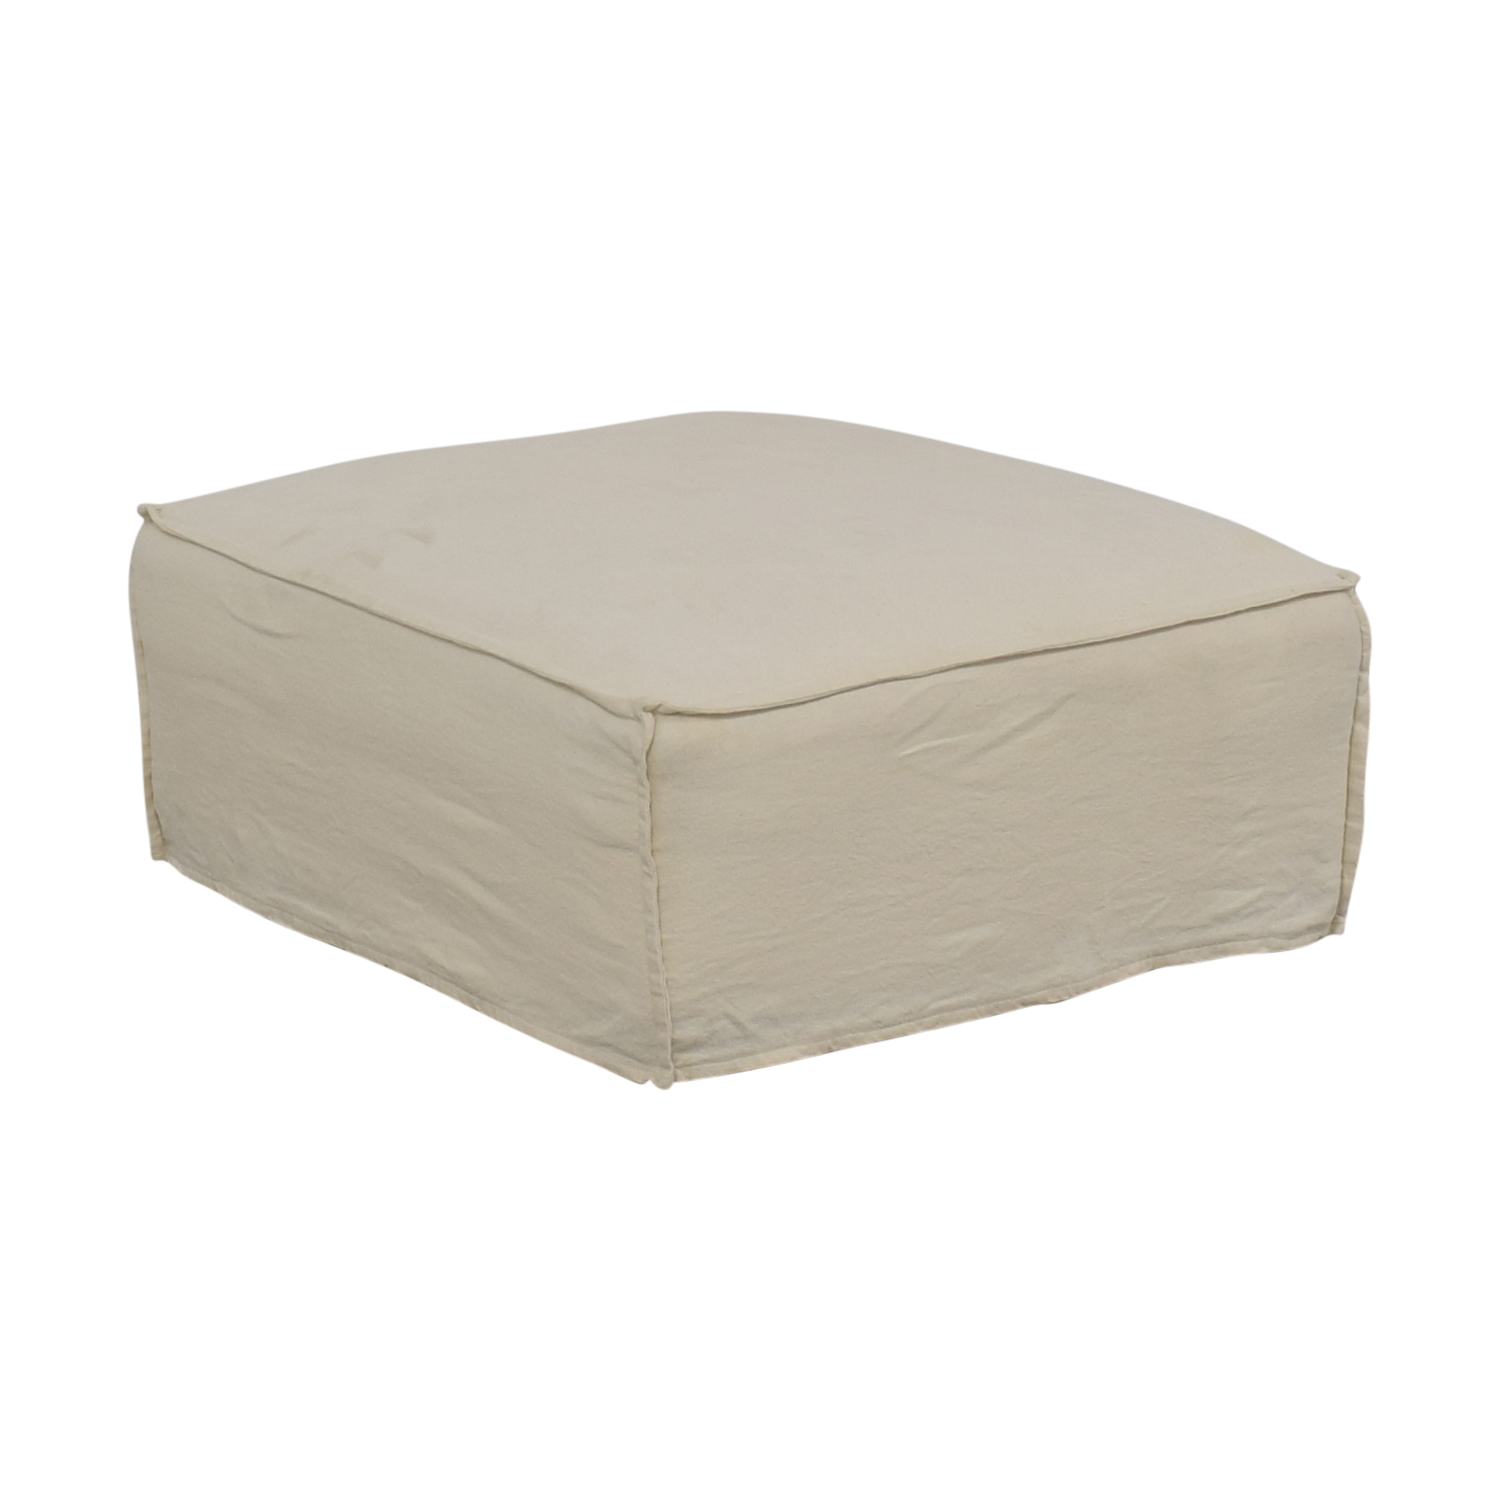 Crate & Barrel Oasis Ottoman Crate & Barrel